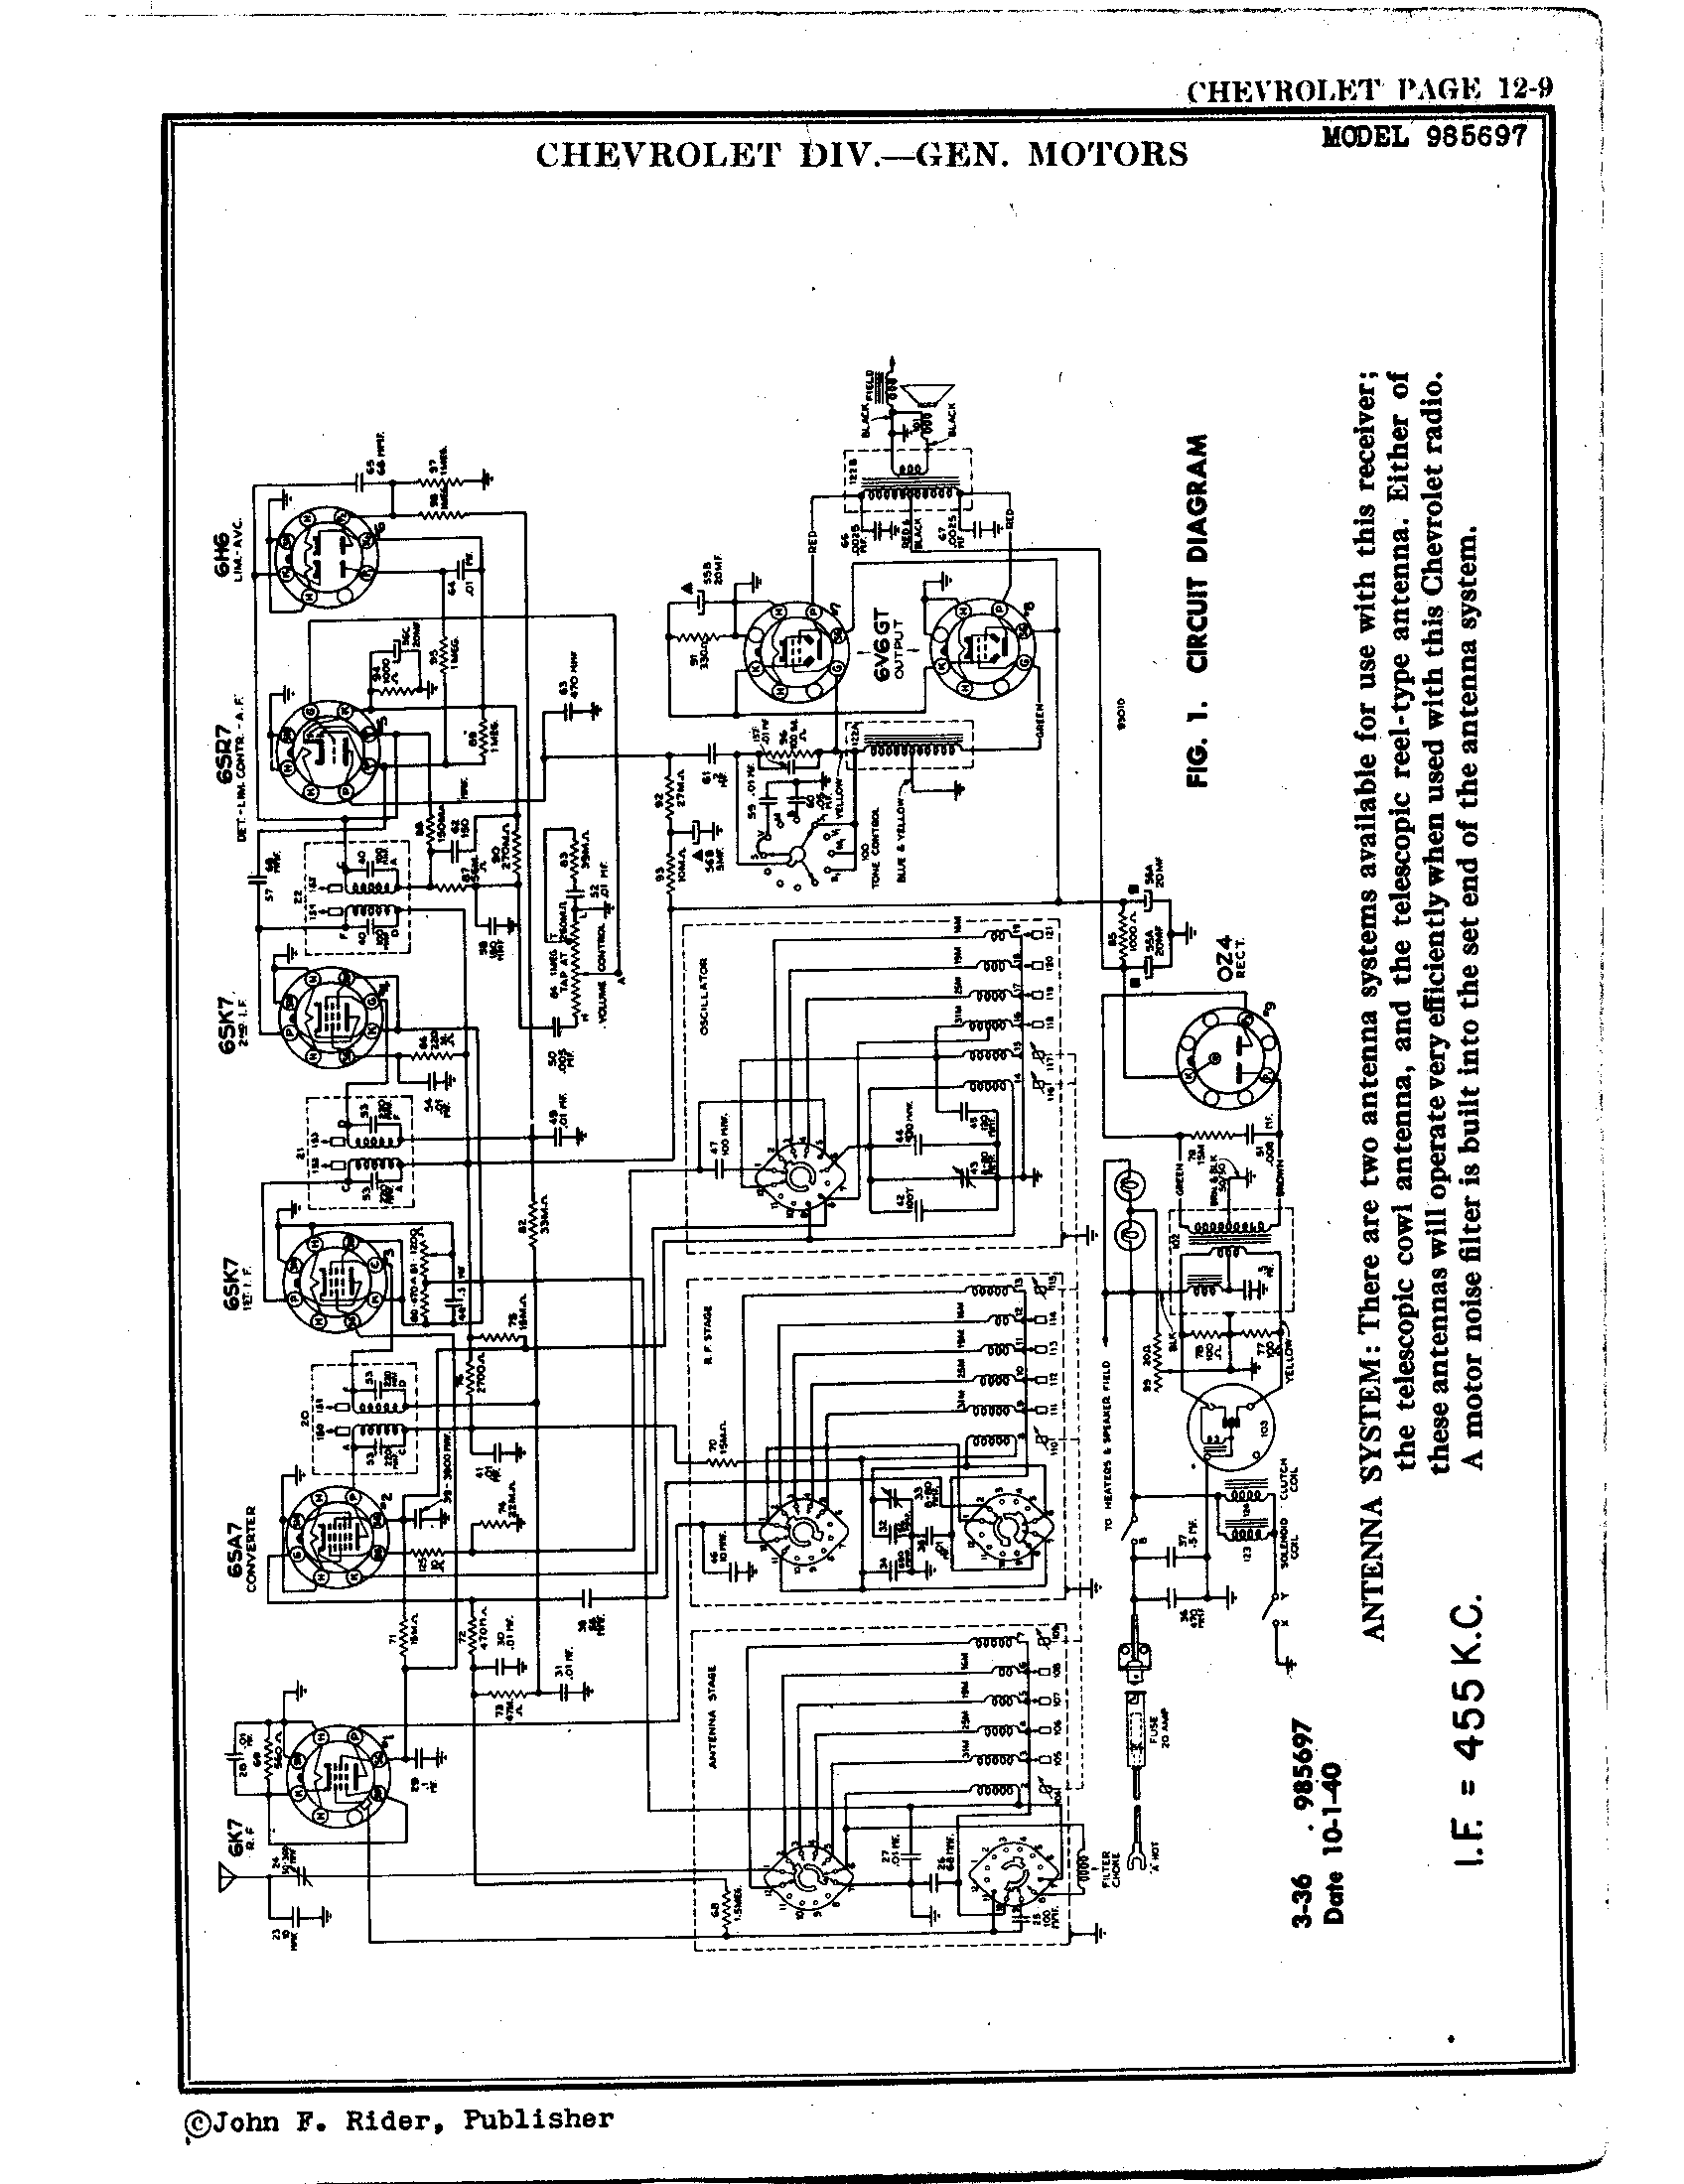 Chevrolet Div General Motors 985697 Antique Electronic Supply Noise Filter Circuit Diagram Schematic Pages